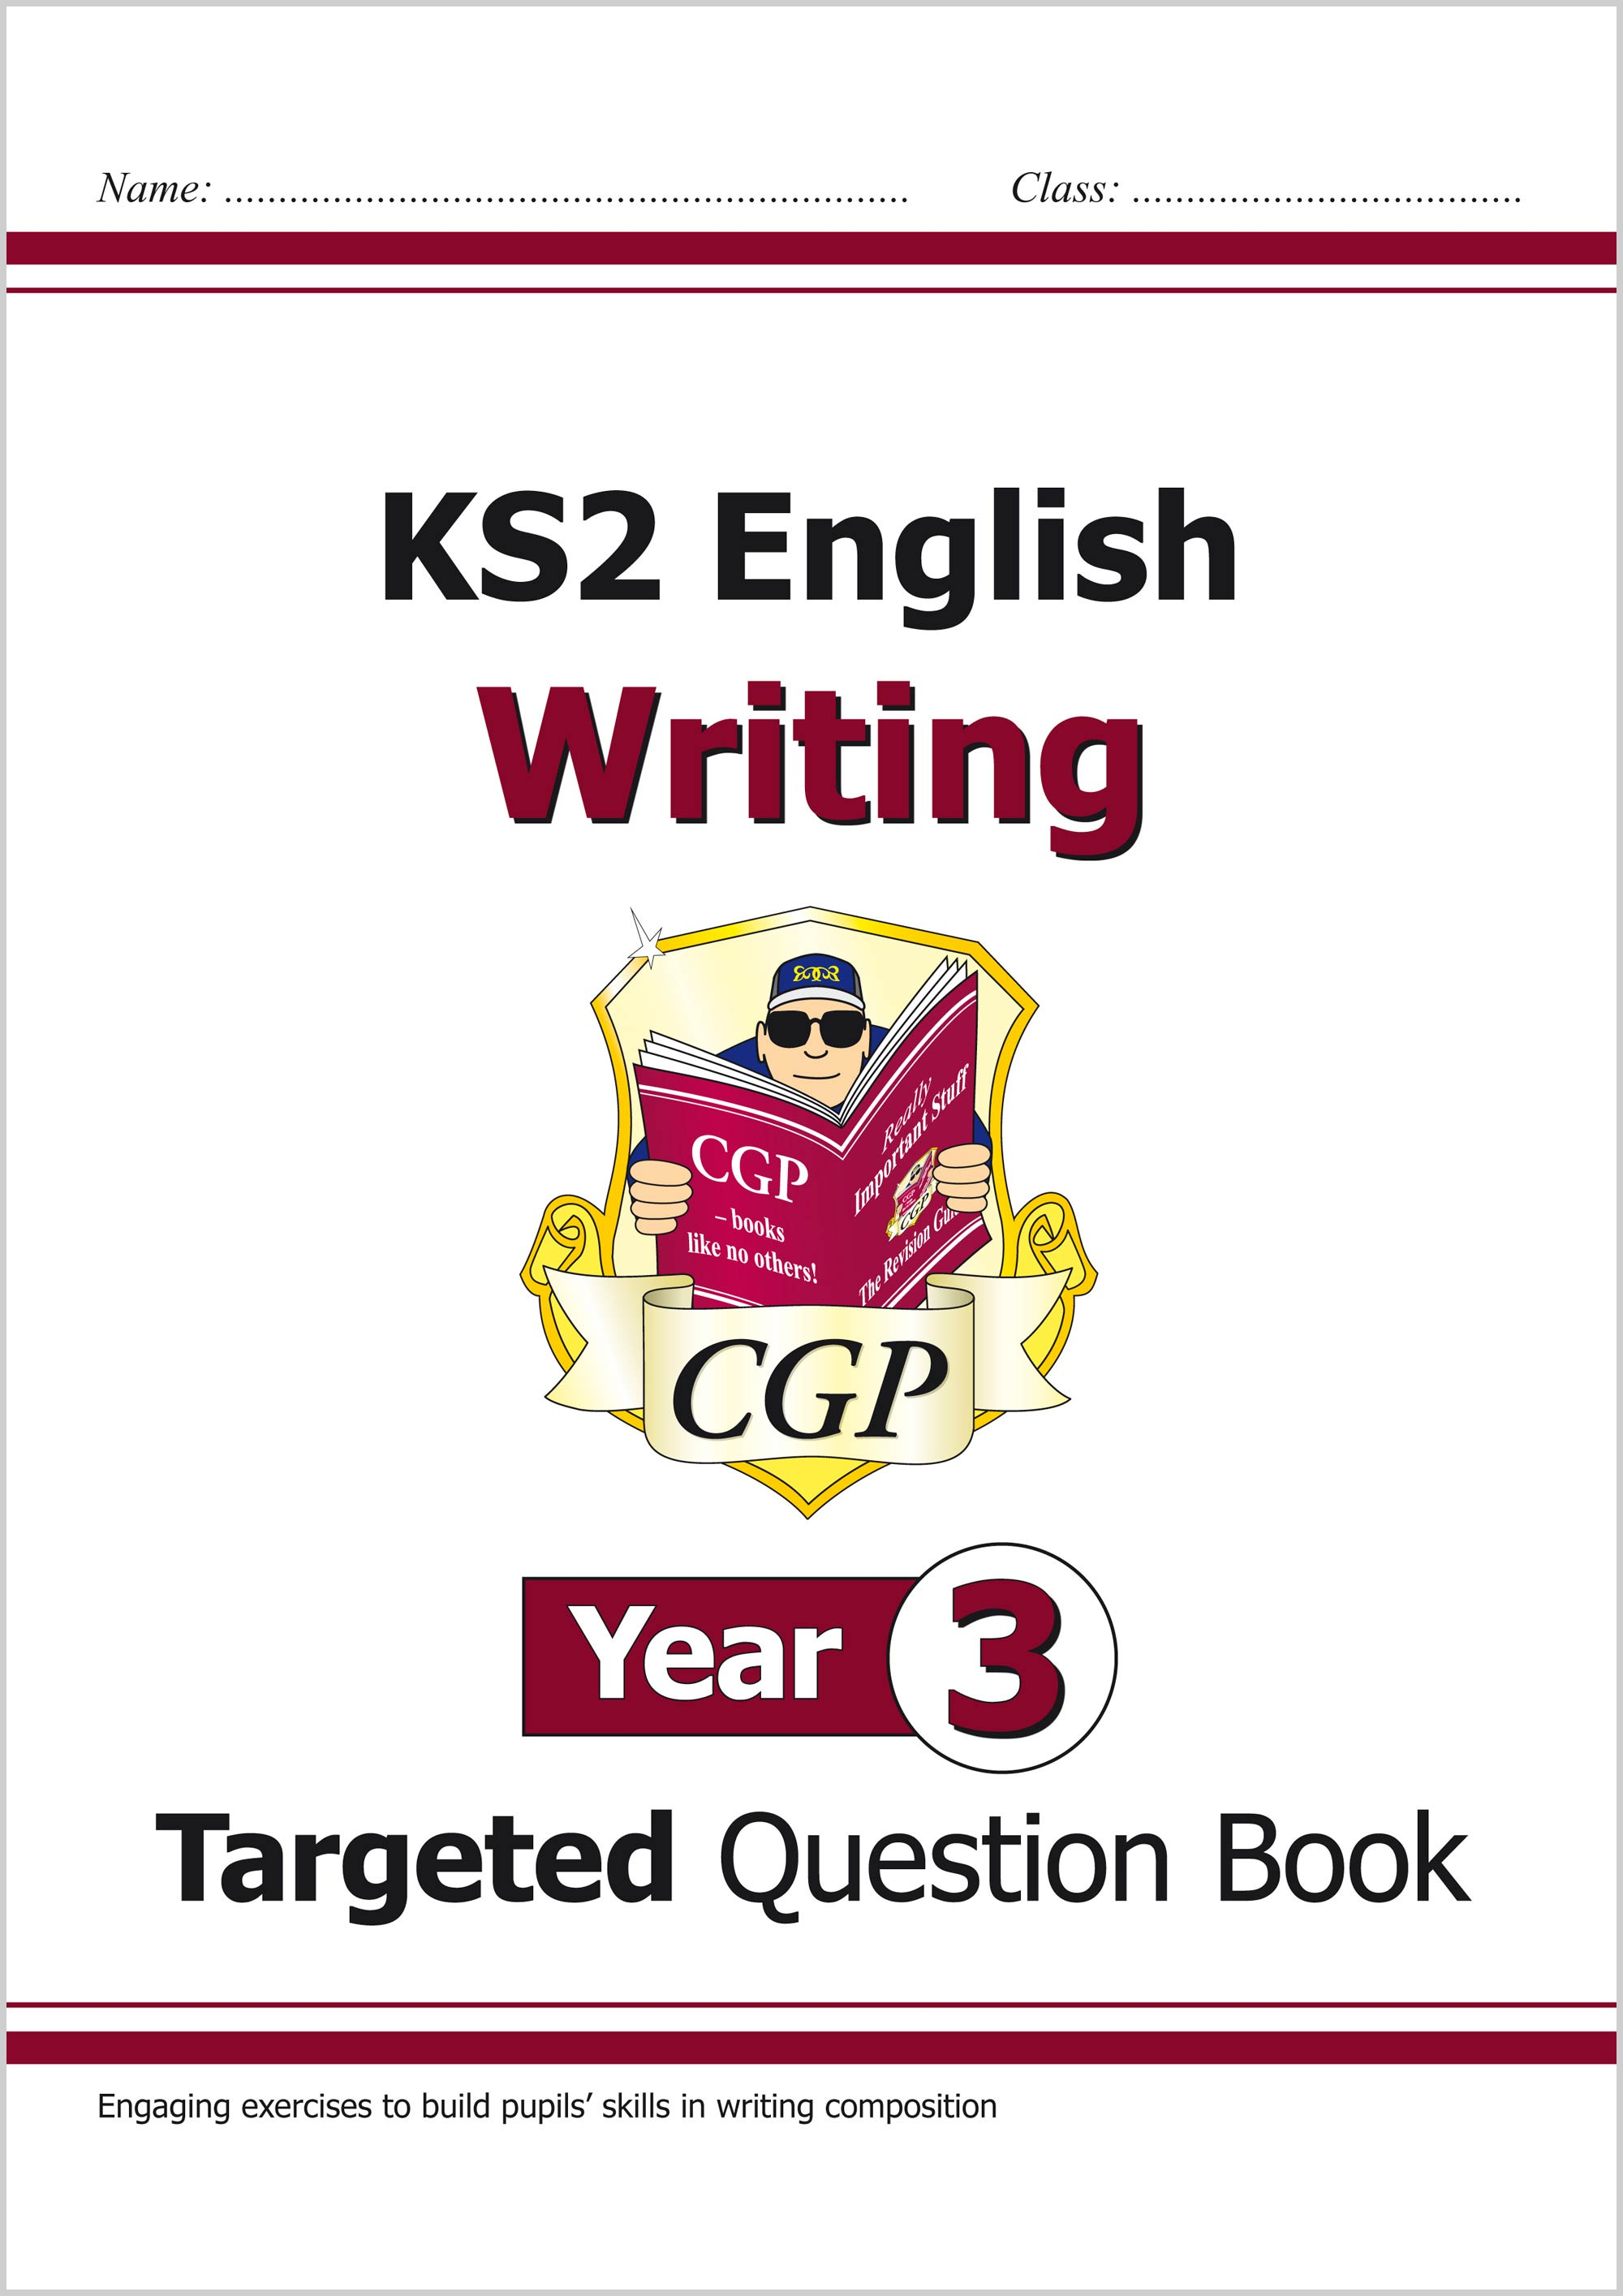 E3WW21 - KS2 English Writing Targeted Question Book - Year 3